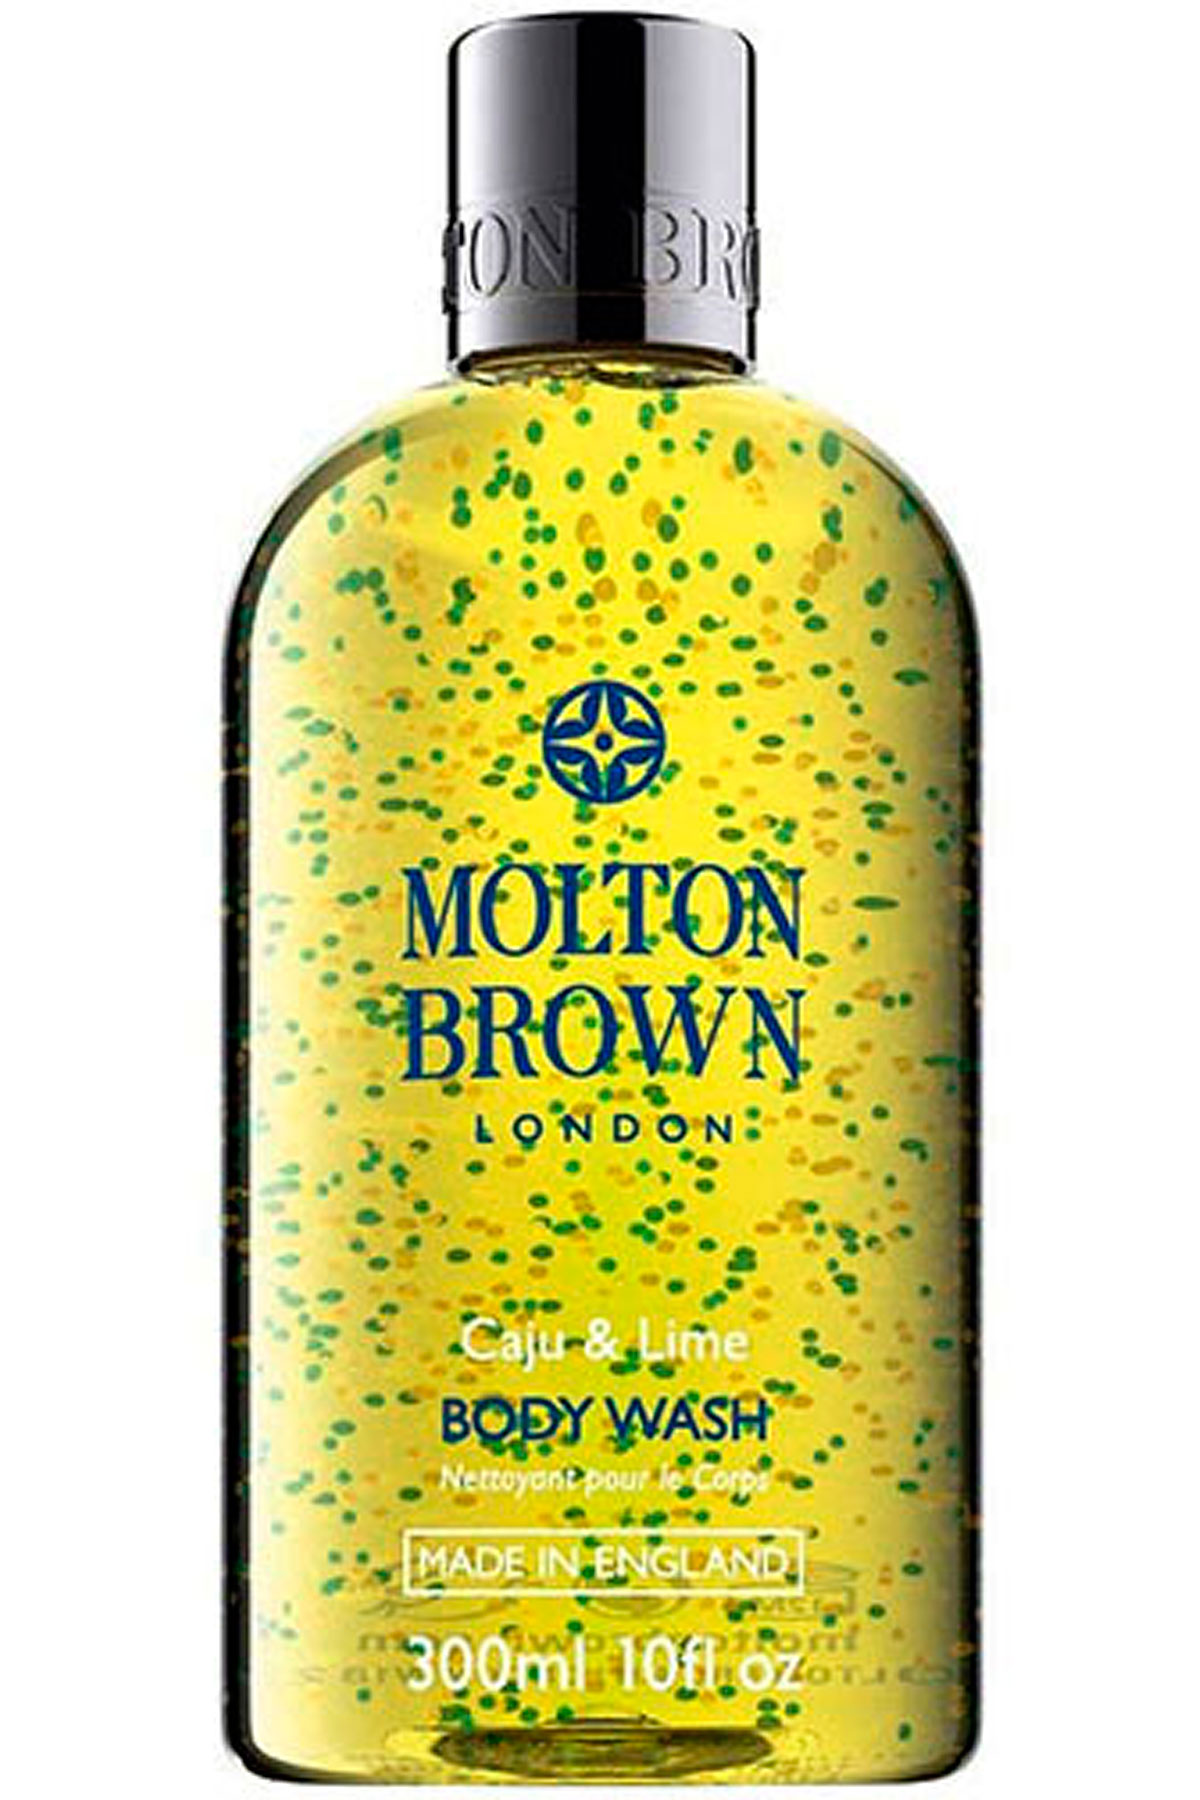 Molton Brown Beauty for Women, Caju & Lime - Body Wash - 300 Ml, 2019, 300 ml